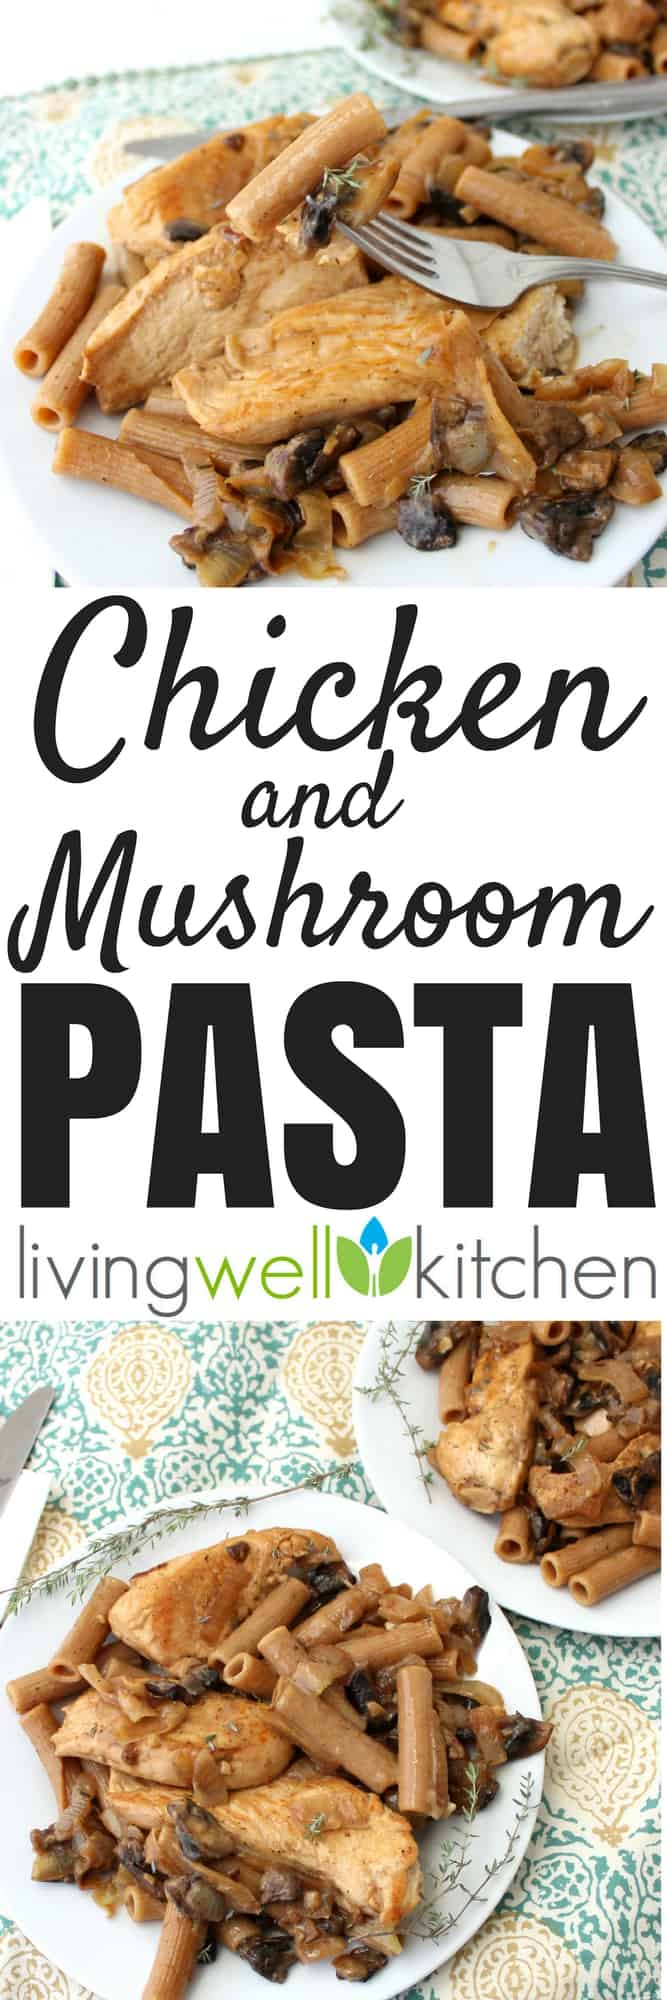 Chicken and Mushroom Pasta is a super easy and versatile dish that you can make sure own for a quick and delicious dinner in less than 30 minutes. Great recipe for using up vegetables past their prime, it is an incredibly rich and filling meal without cream or butter